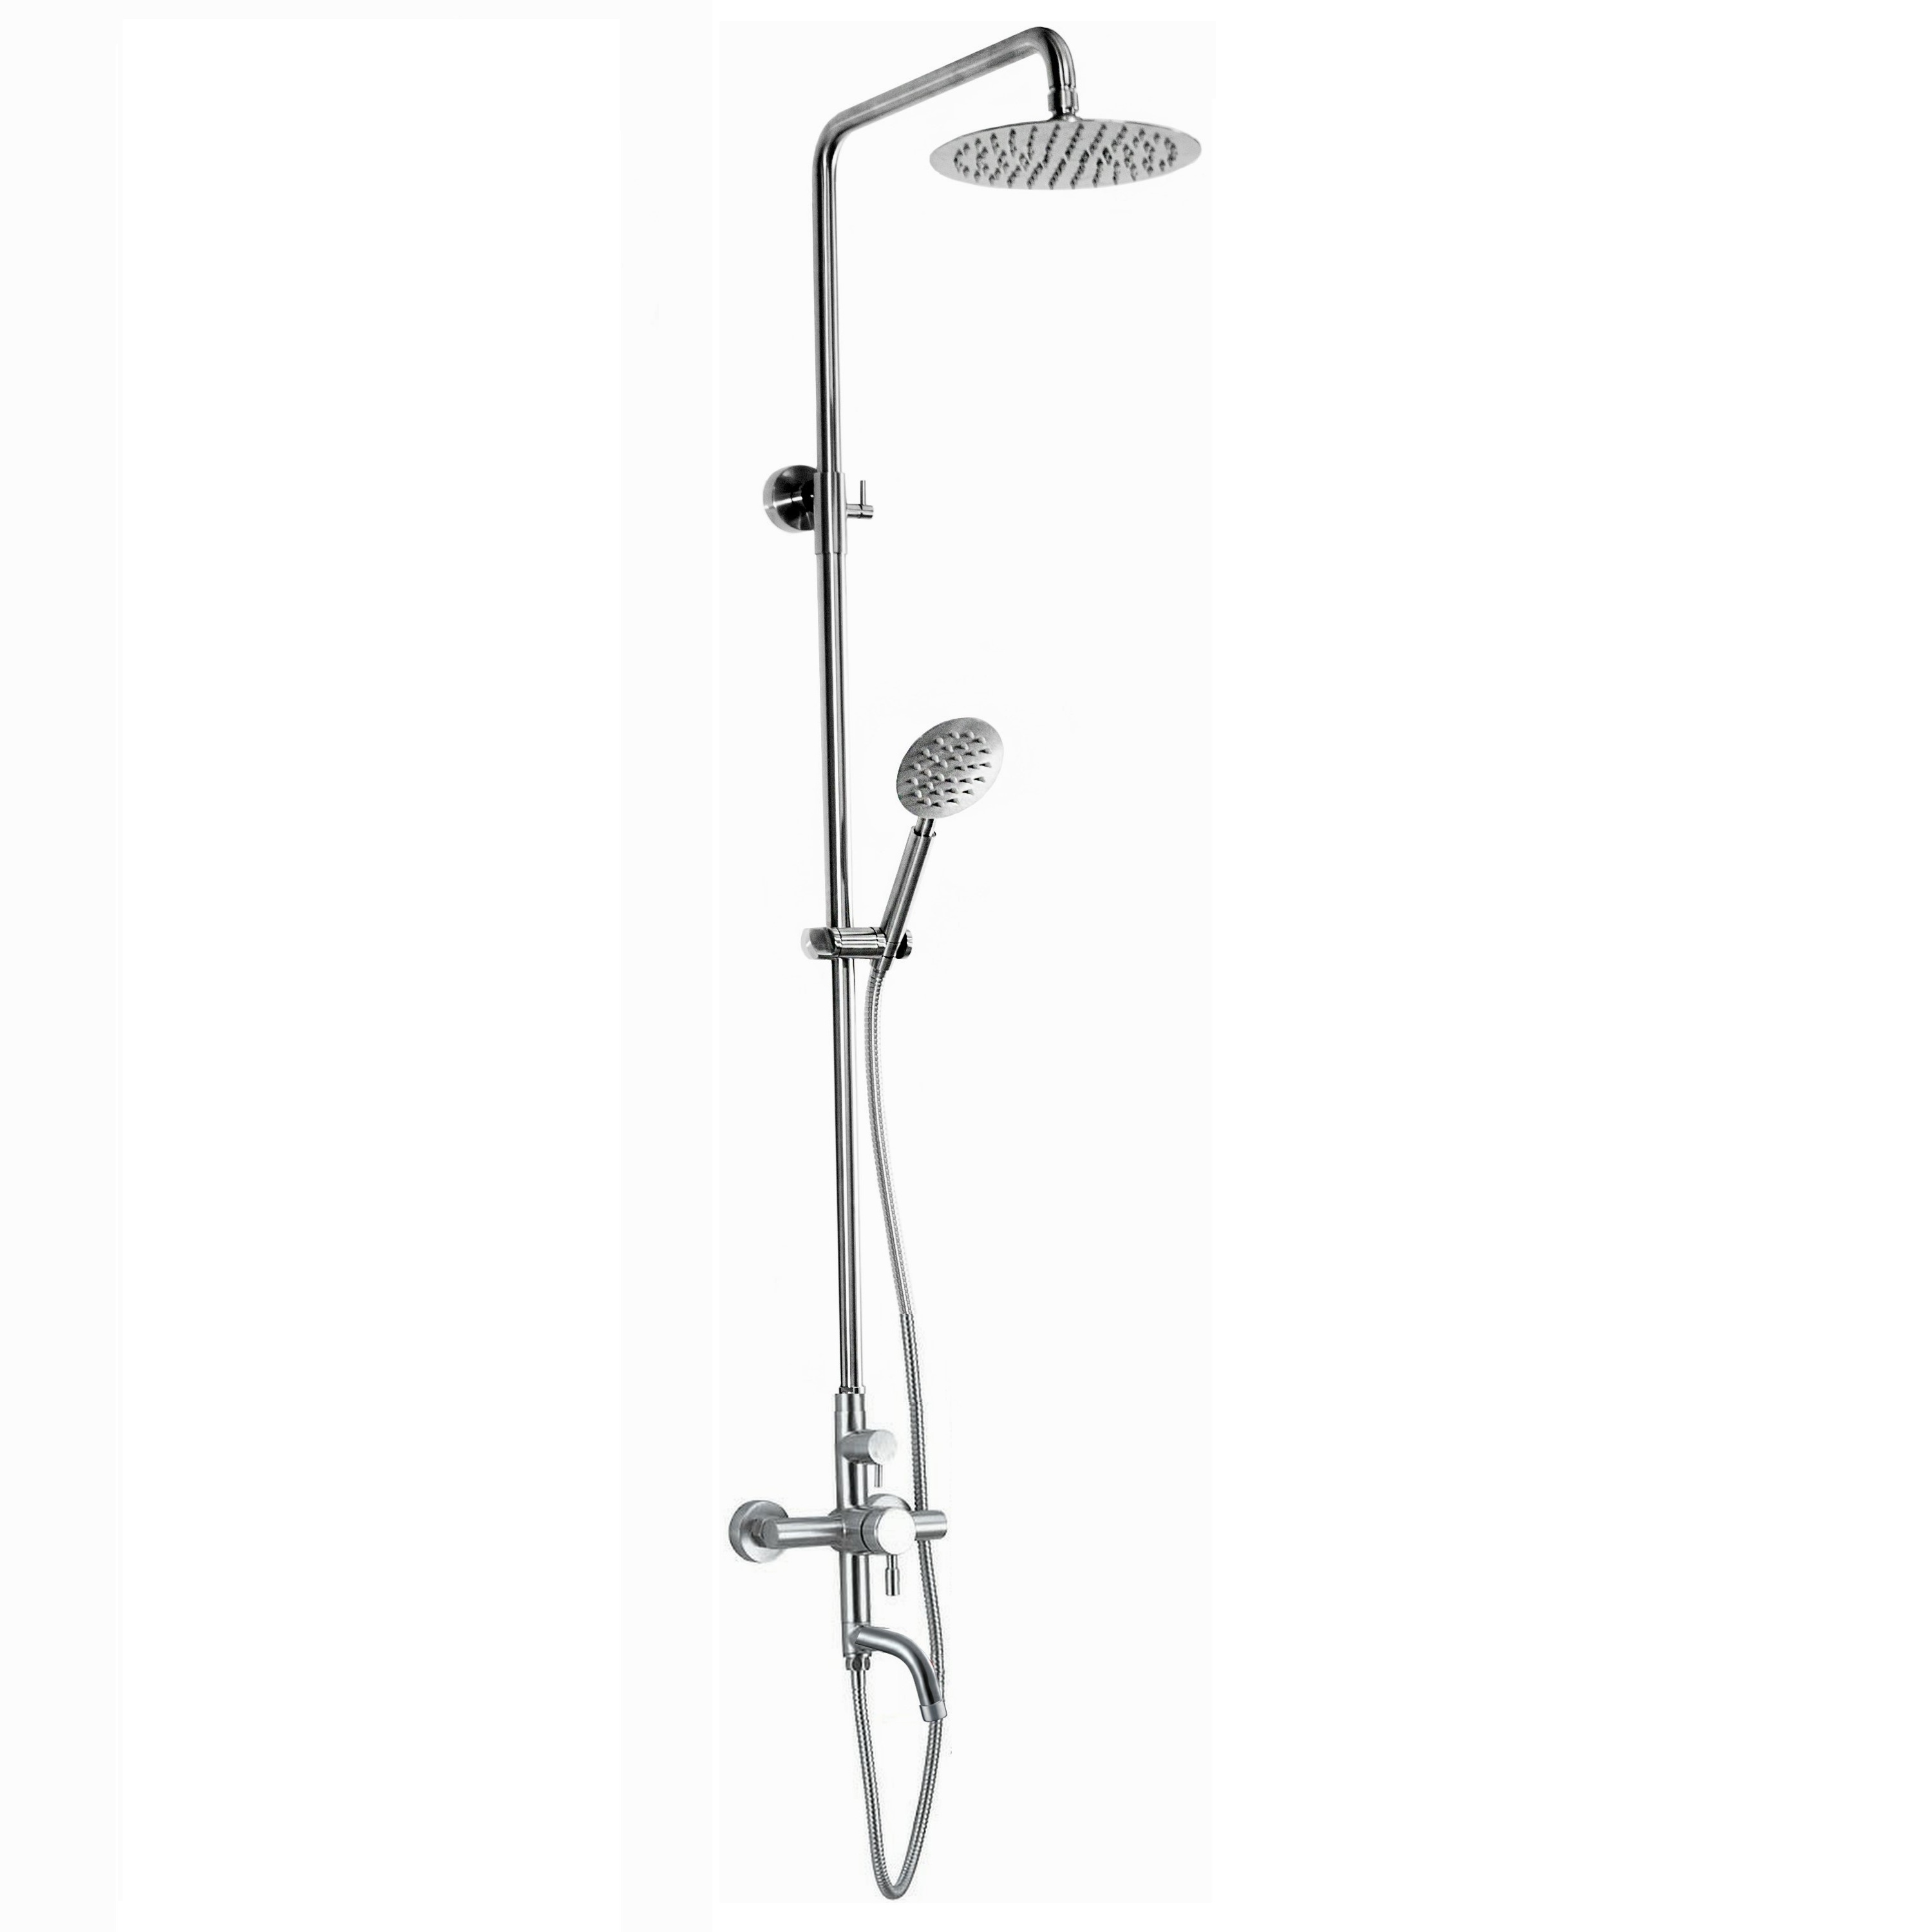 Outdoor Shower Company DVA-L1-WMHC-FS Wall Mount Hot & Cold Shower